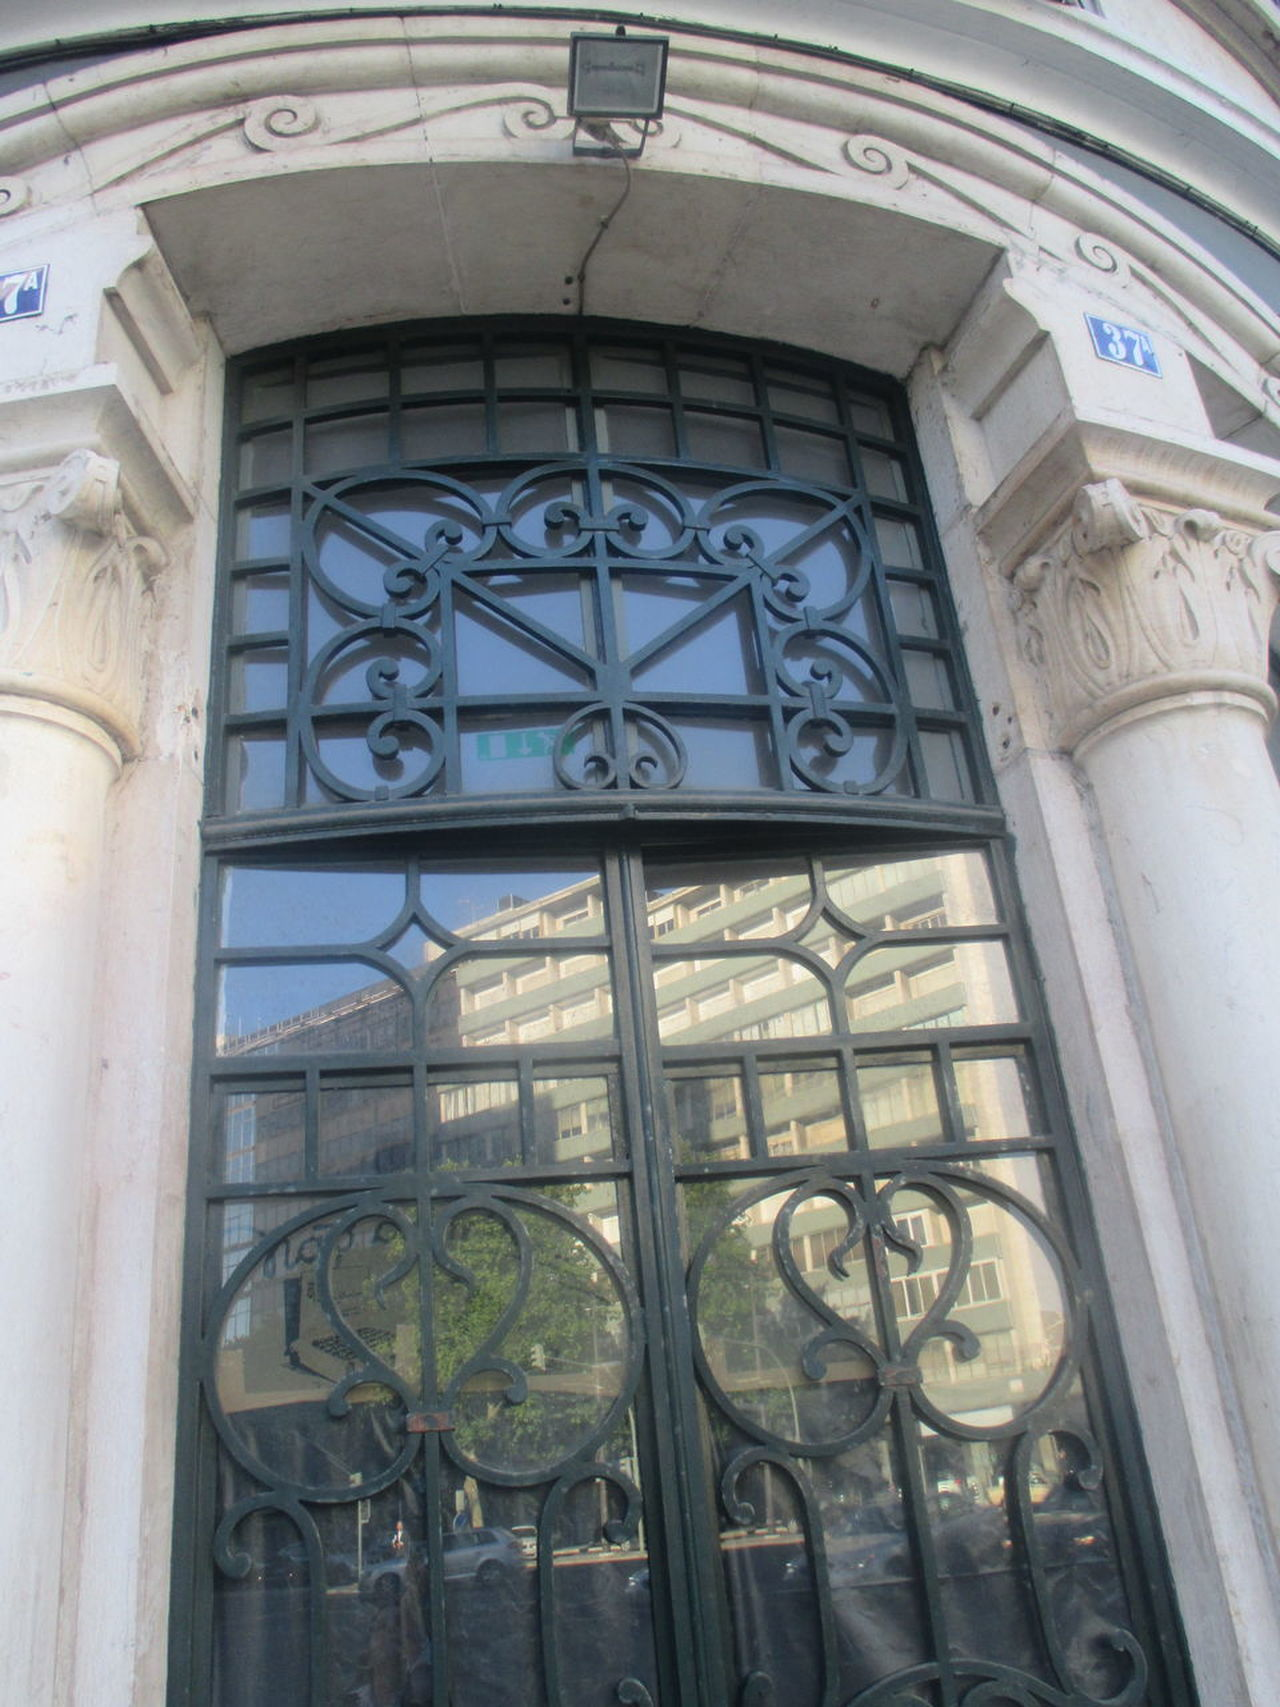 #beautiful Entrance Door #beautiful Old Door #blue Sky #entrance #entrance Door #glassart #iron And Glass #iron Gate #iron Ornaments #iron Ornaments On The Gate #old Style #reflection #reflection Of The City Architecture Building Exterior Building Gate Built Structure Close-up Day Low Angle View No People Old Gate Outdoors Urban Details Window